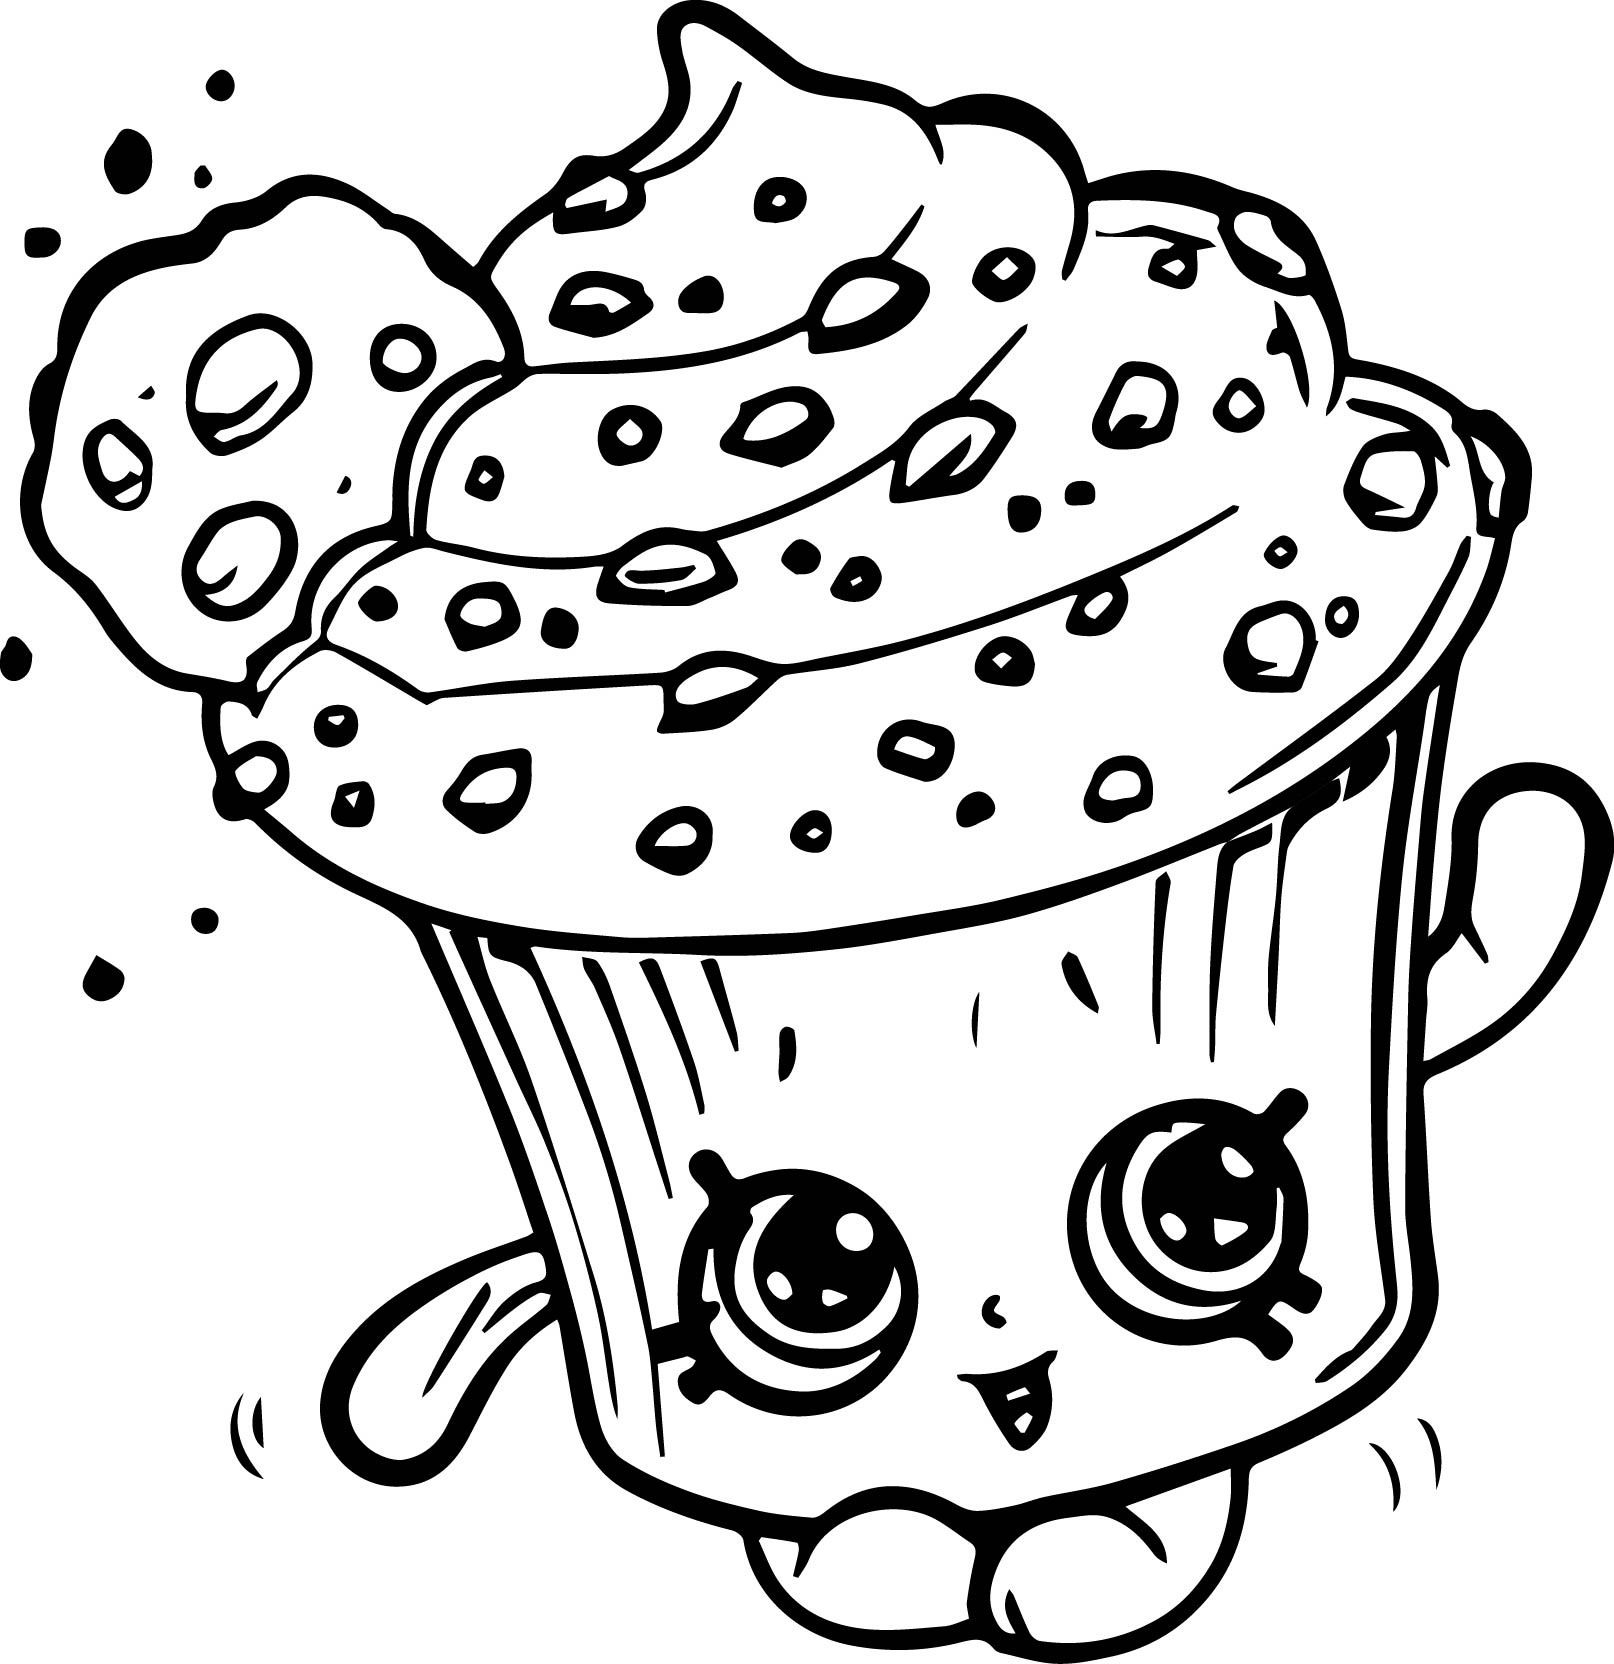 1614x1664 Coloring Pages Of Cupcakes And Cookies To Print Coloring Book